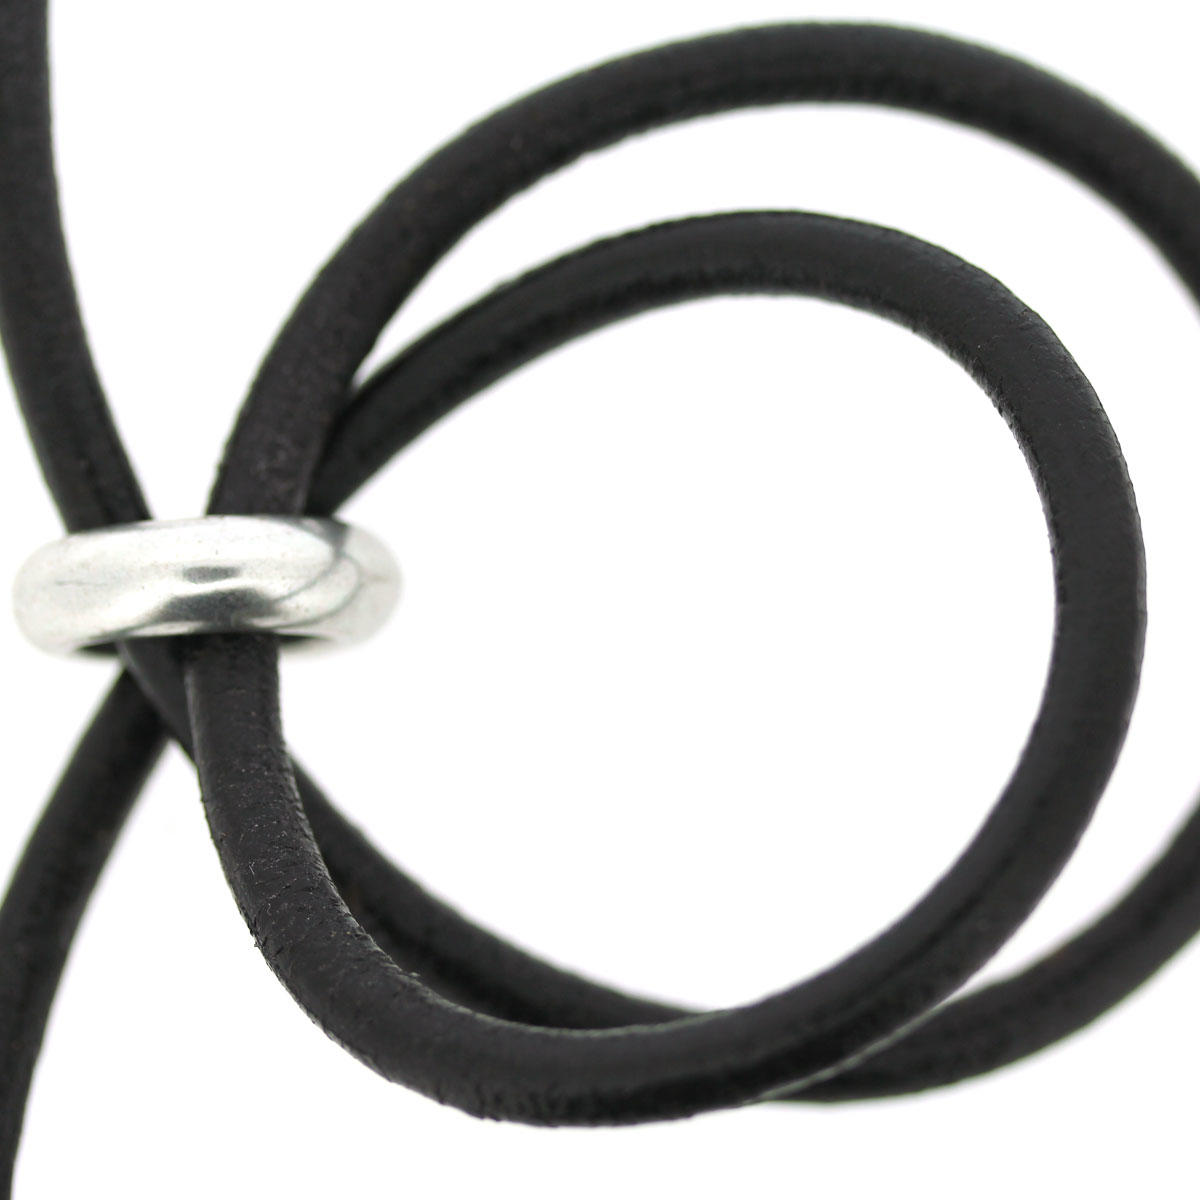 Black 5mm Round Bracelet Leather